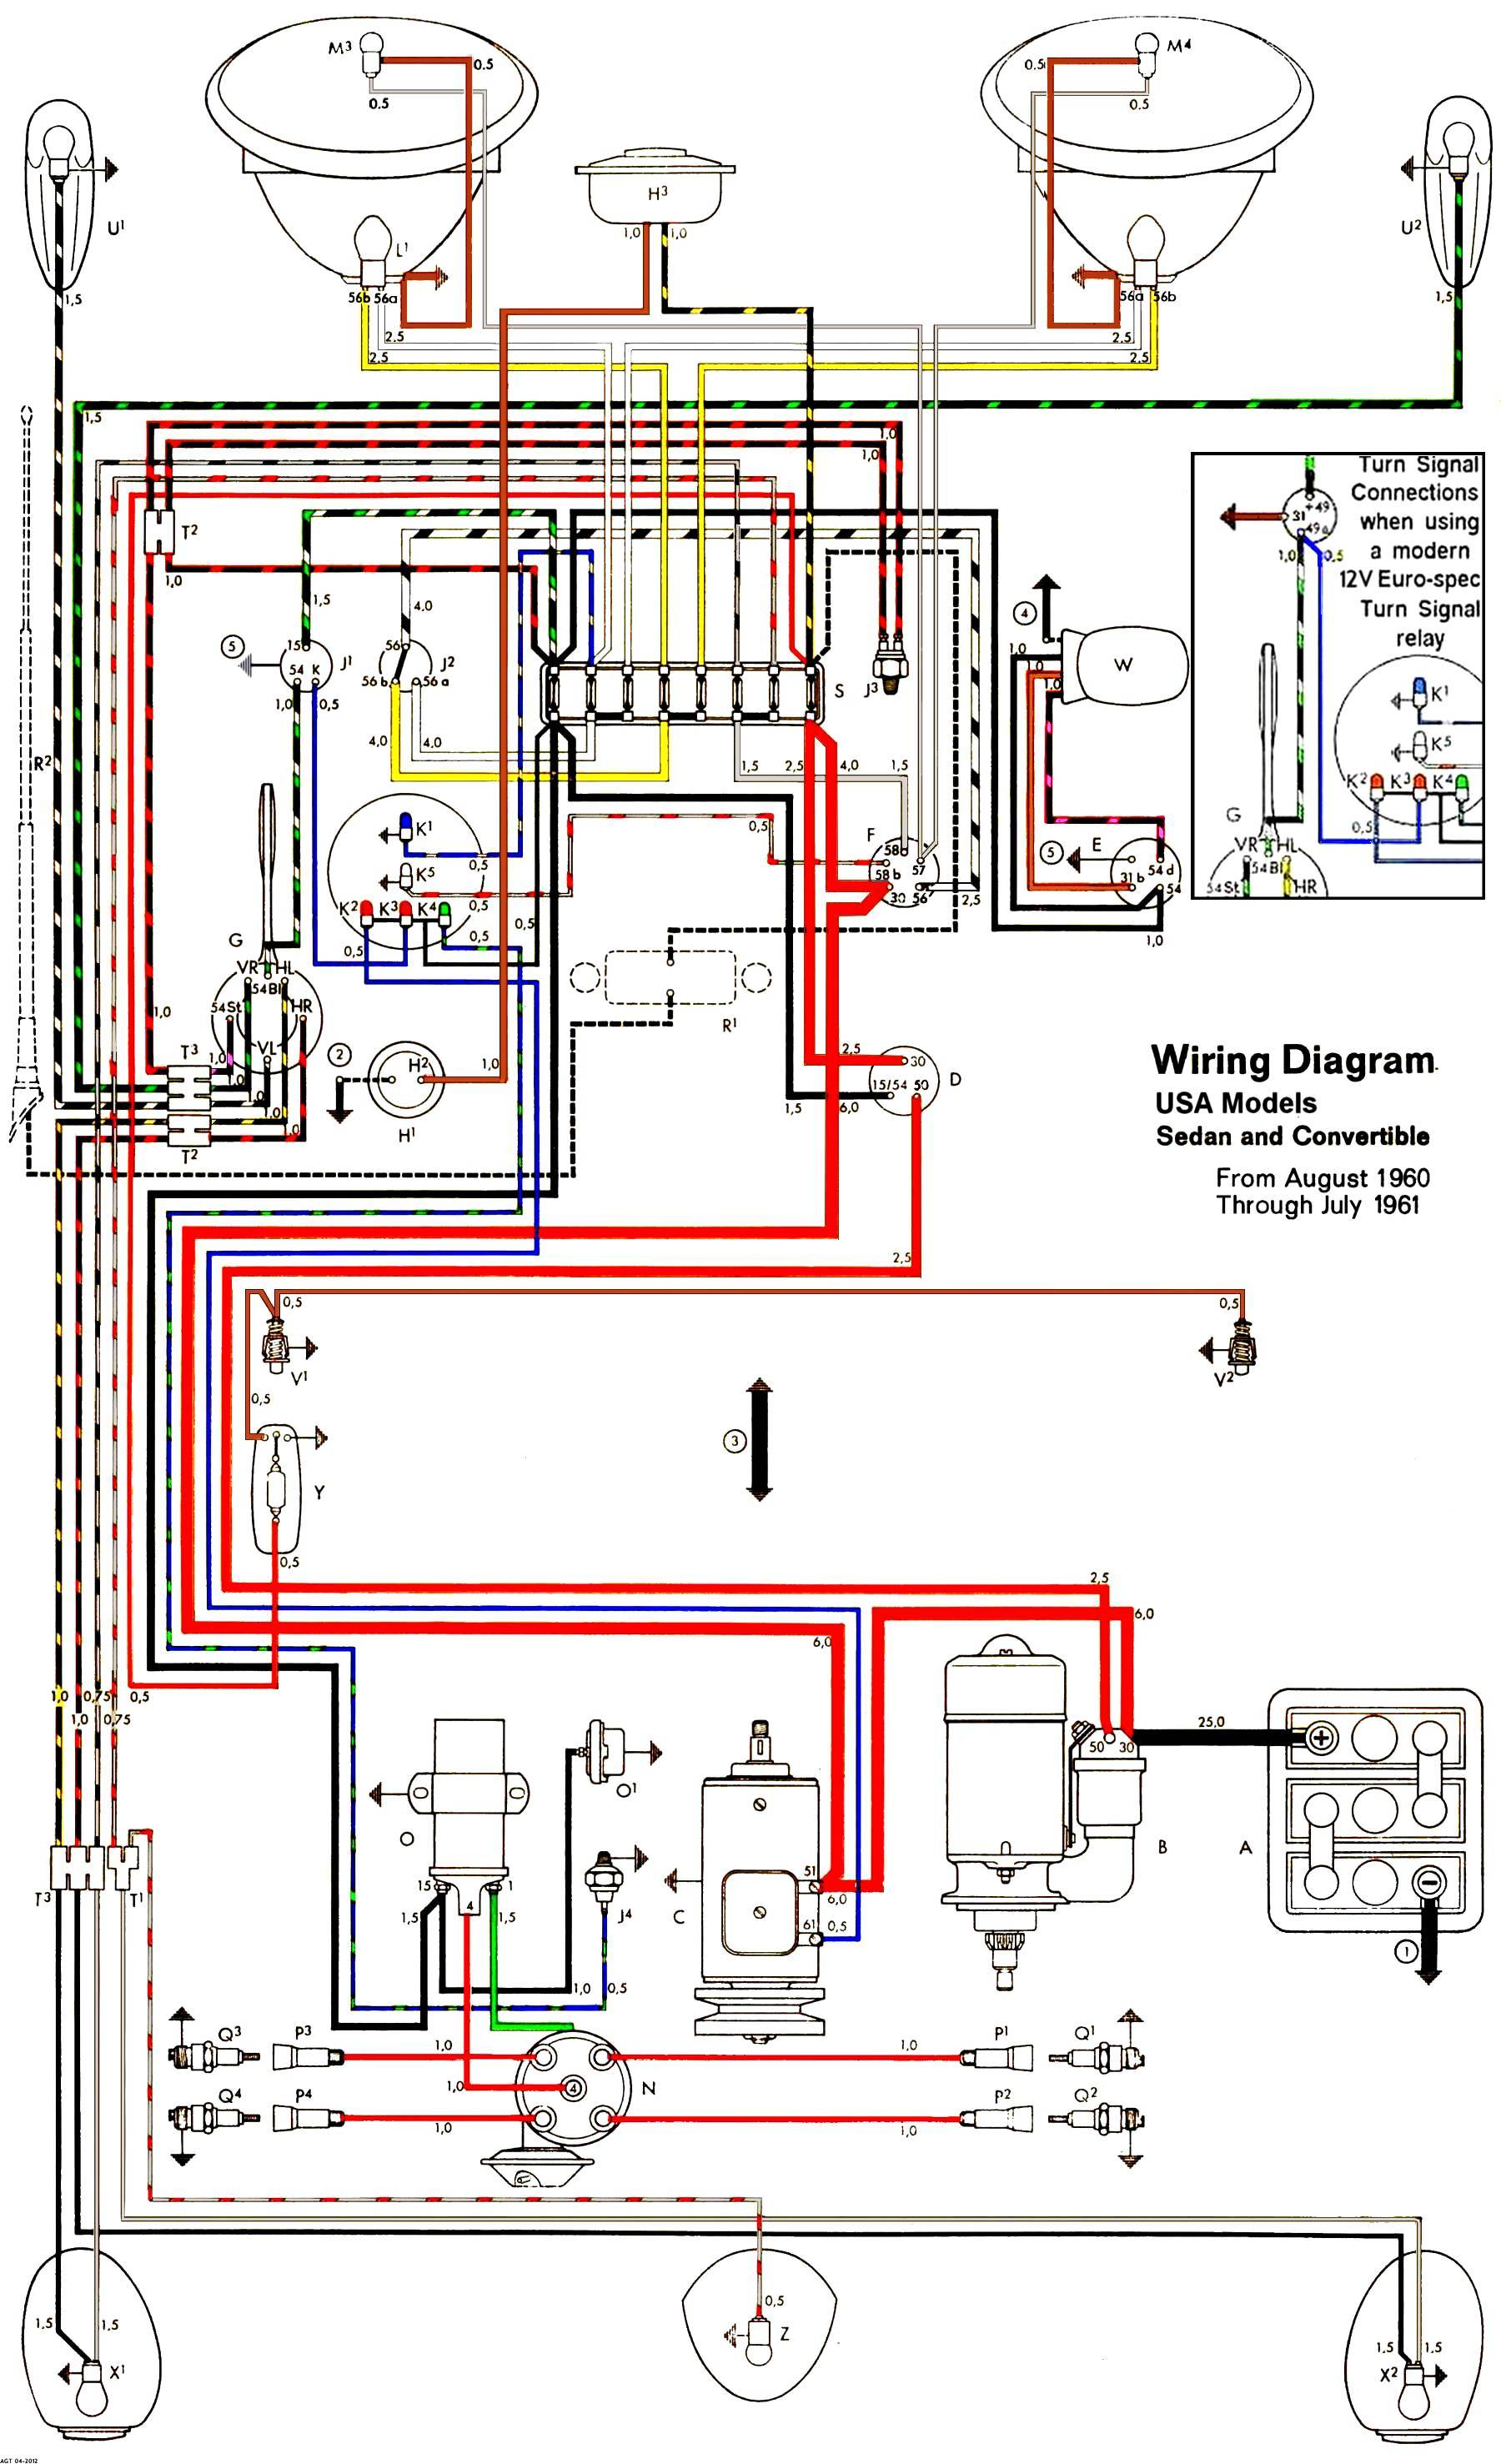 68 Bug Wiring Diagram Another Blog About 1998 Toyota Tacoma Alternator Thesamba Com Type 1 Diagrams